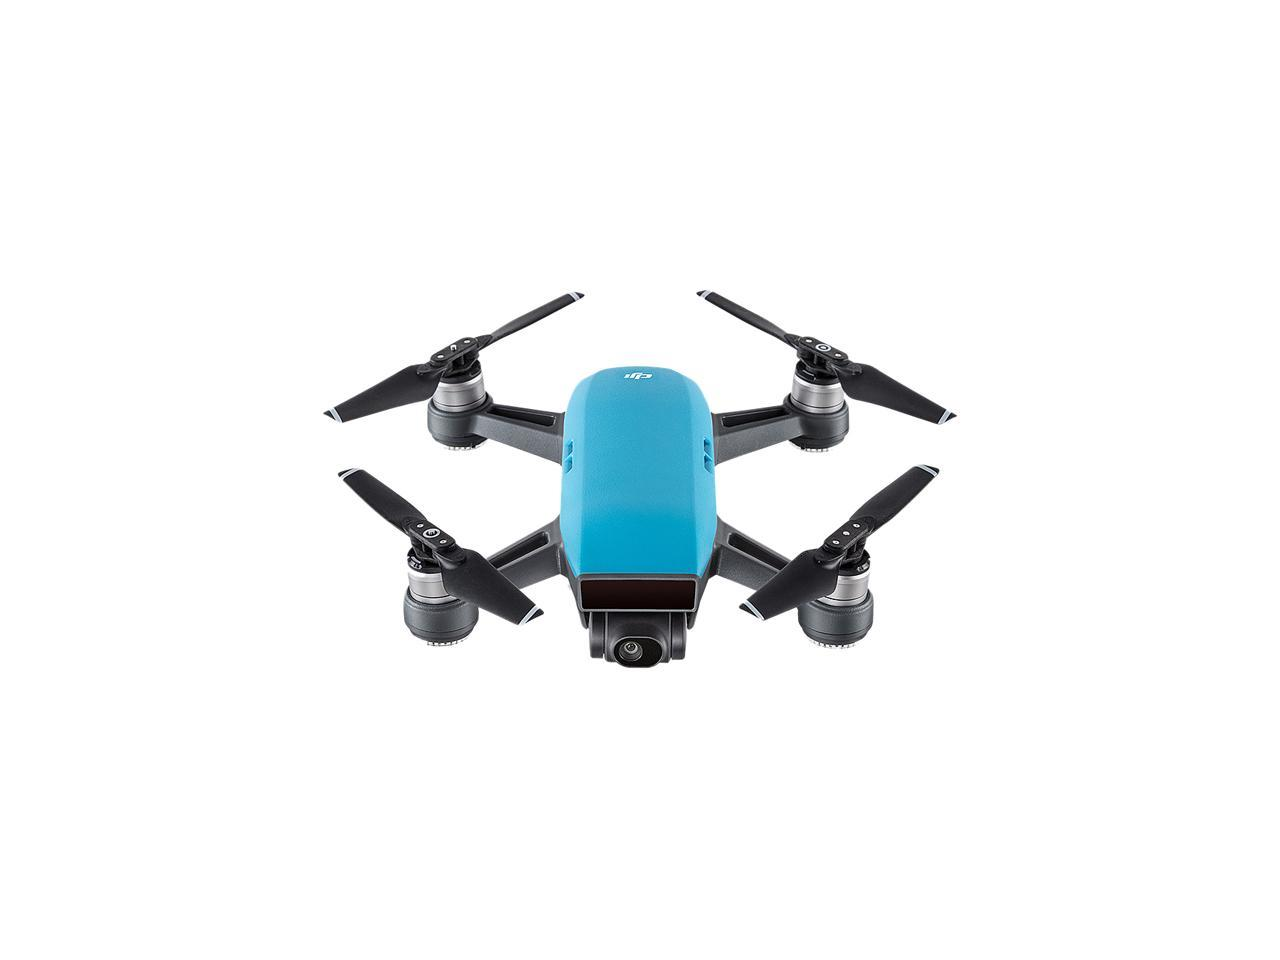 DJI Spark Palm Launch Quadcopter Drone with UltraSmooth Camera, Sky Blue, CP.PT.000733